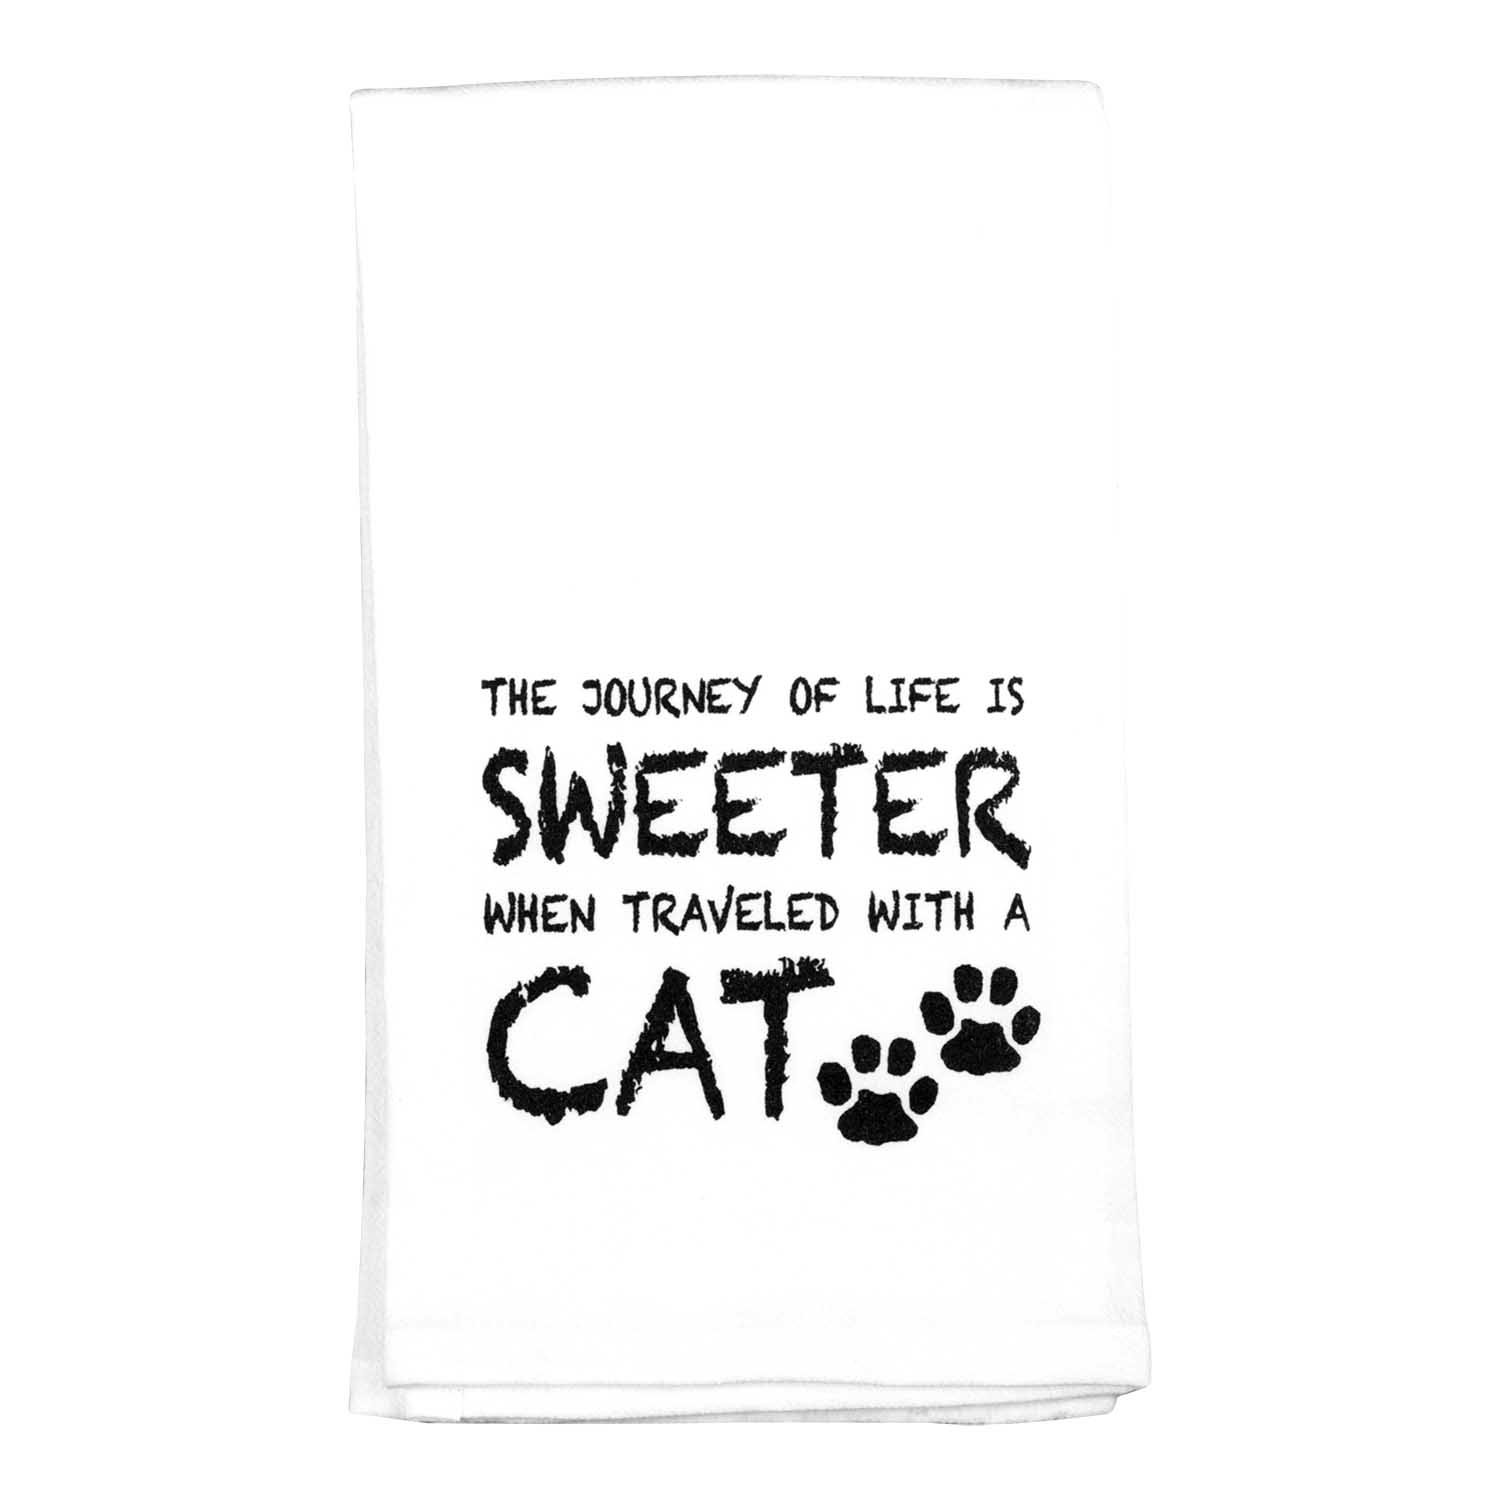 Journey of Life Sweeter with a Cat 18 x 22 All Cotton Flour Sack Hand Towel